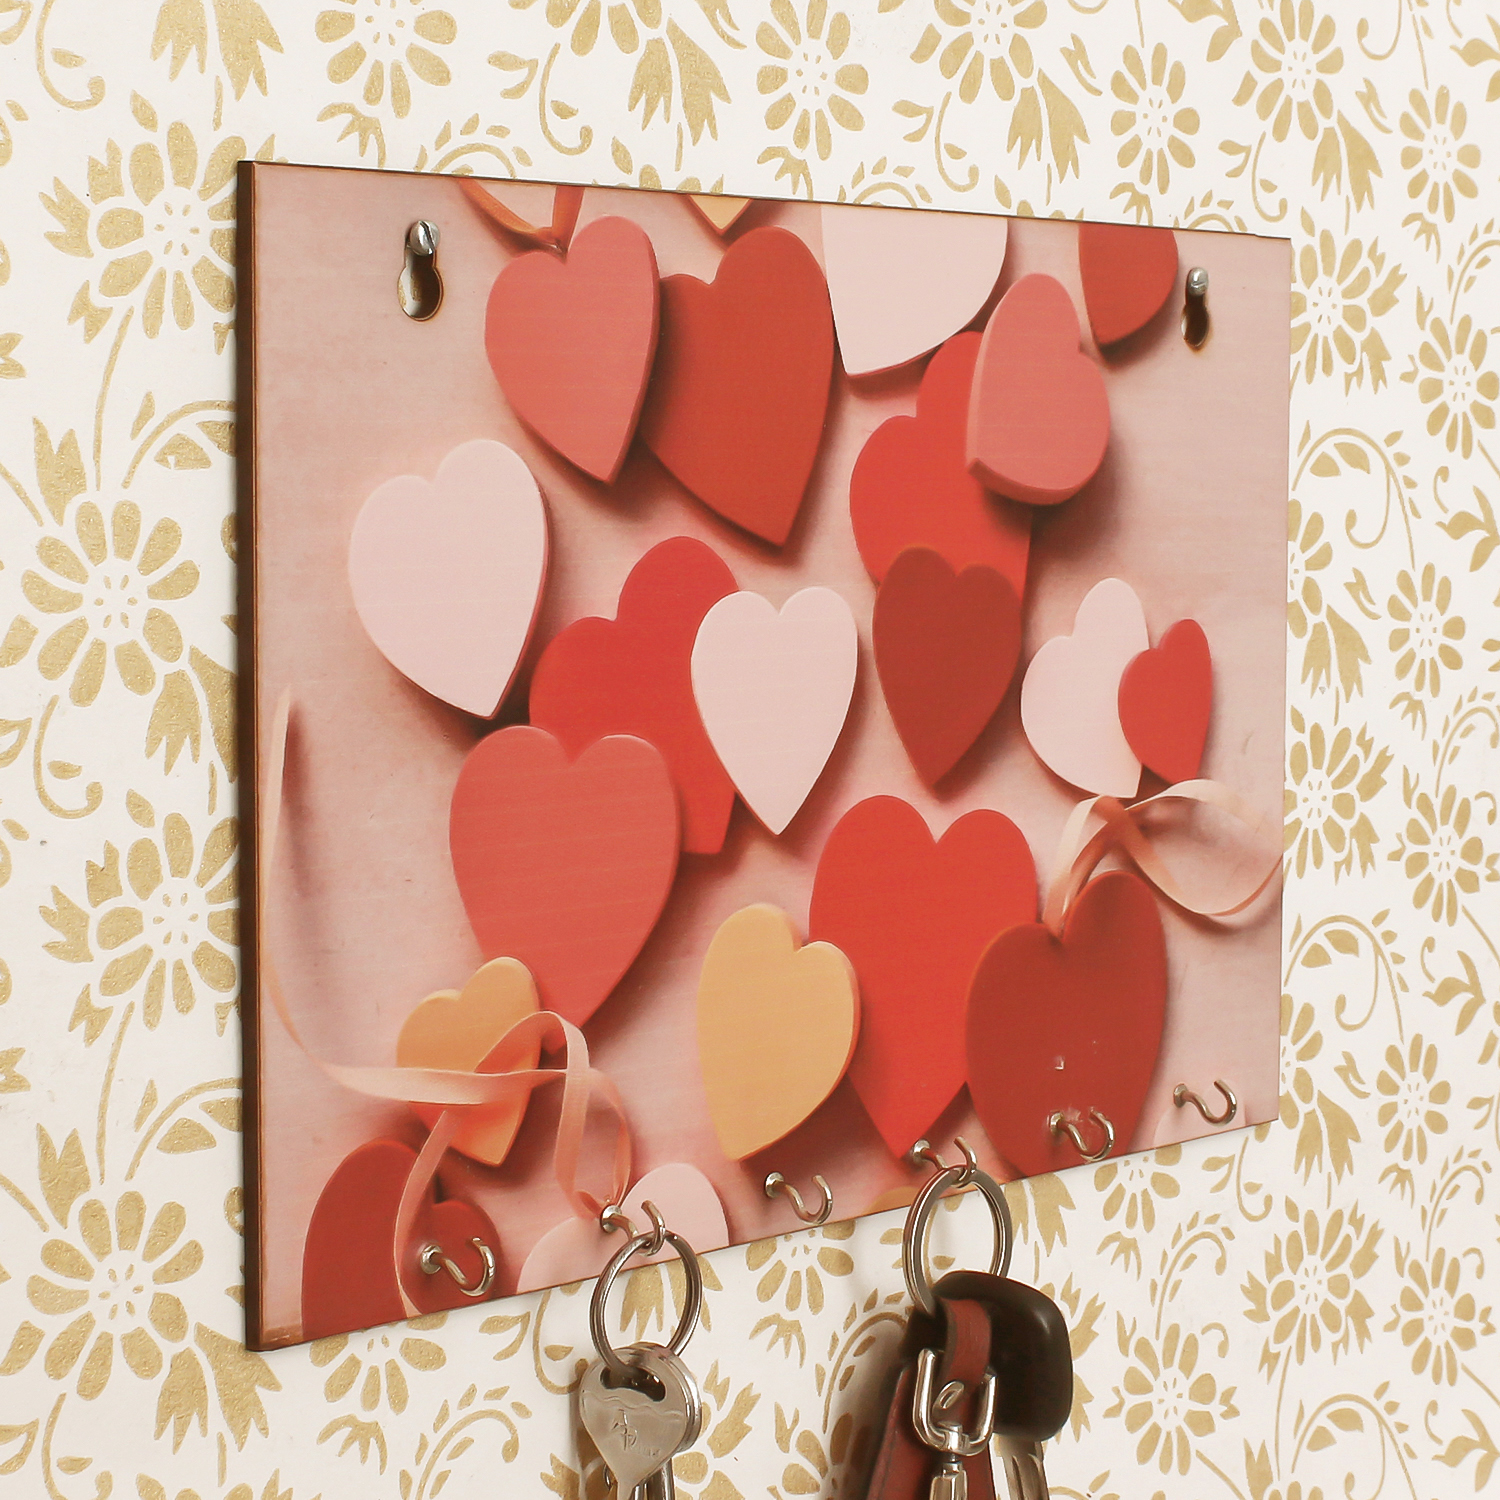 Heart Theme Wooden Key Holder with 6 Hooks Indian Home Decor